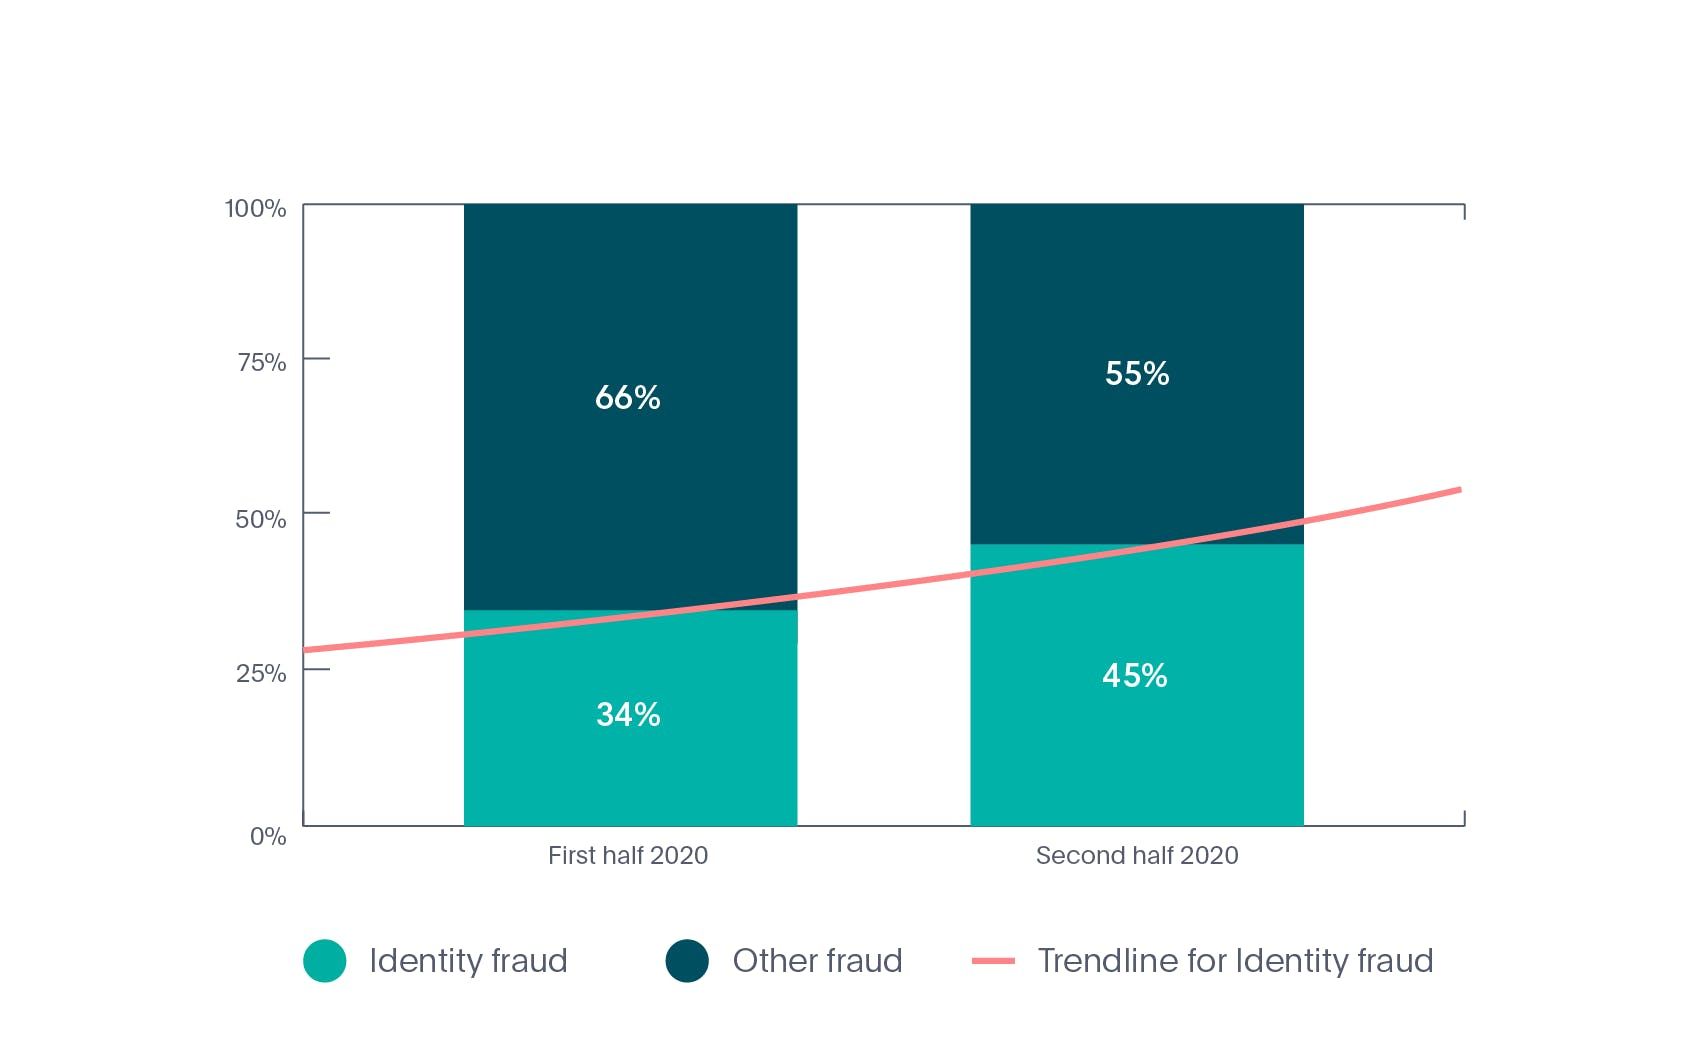 Online identity fraud rate in Crypto industry in 2020